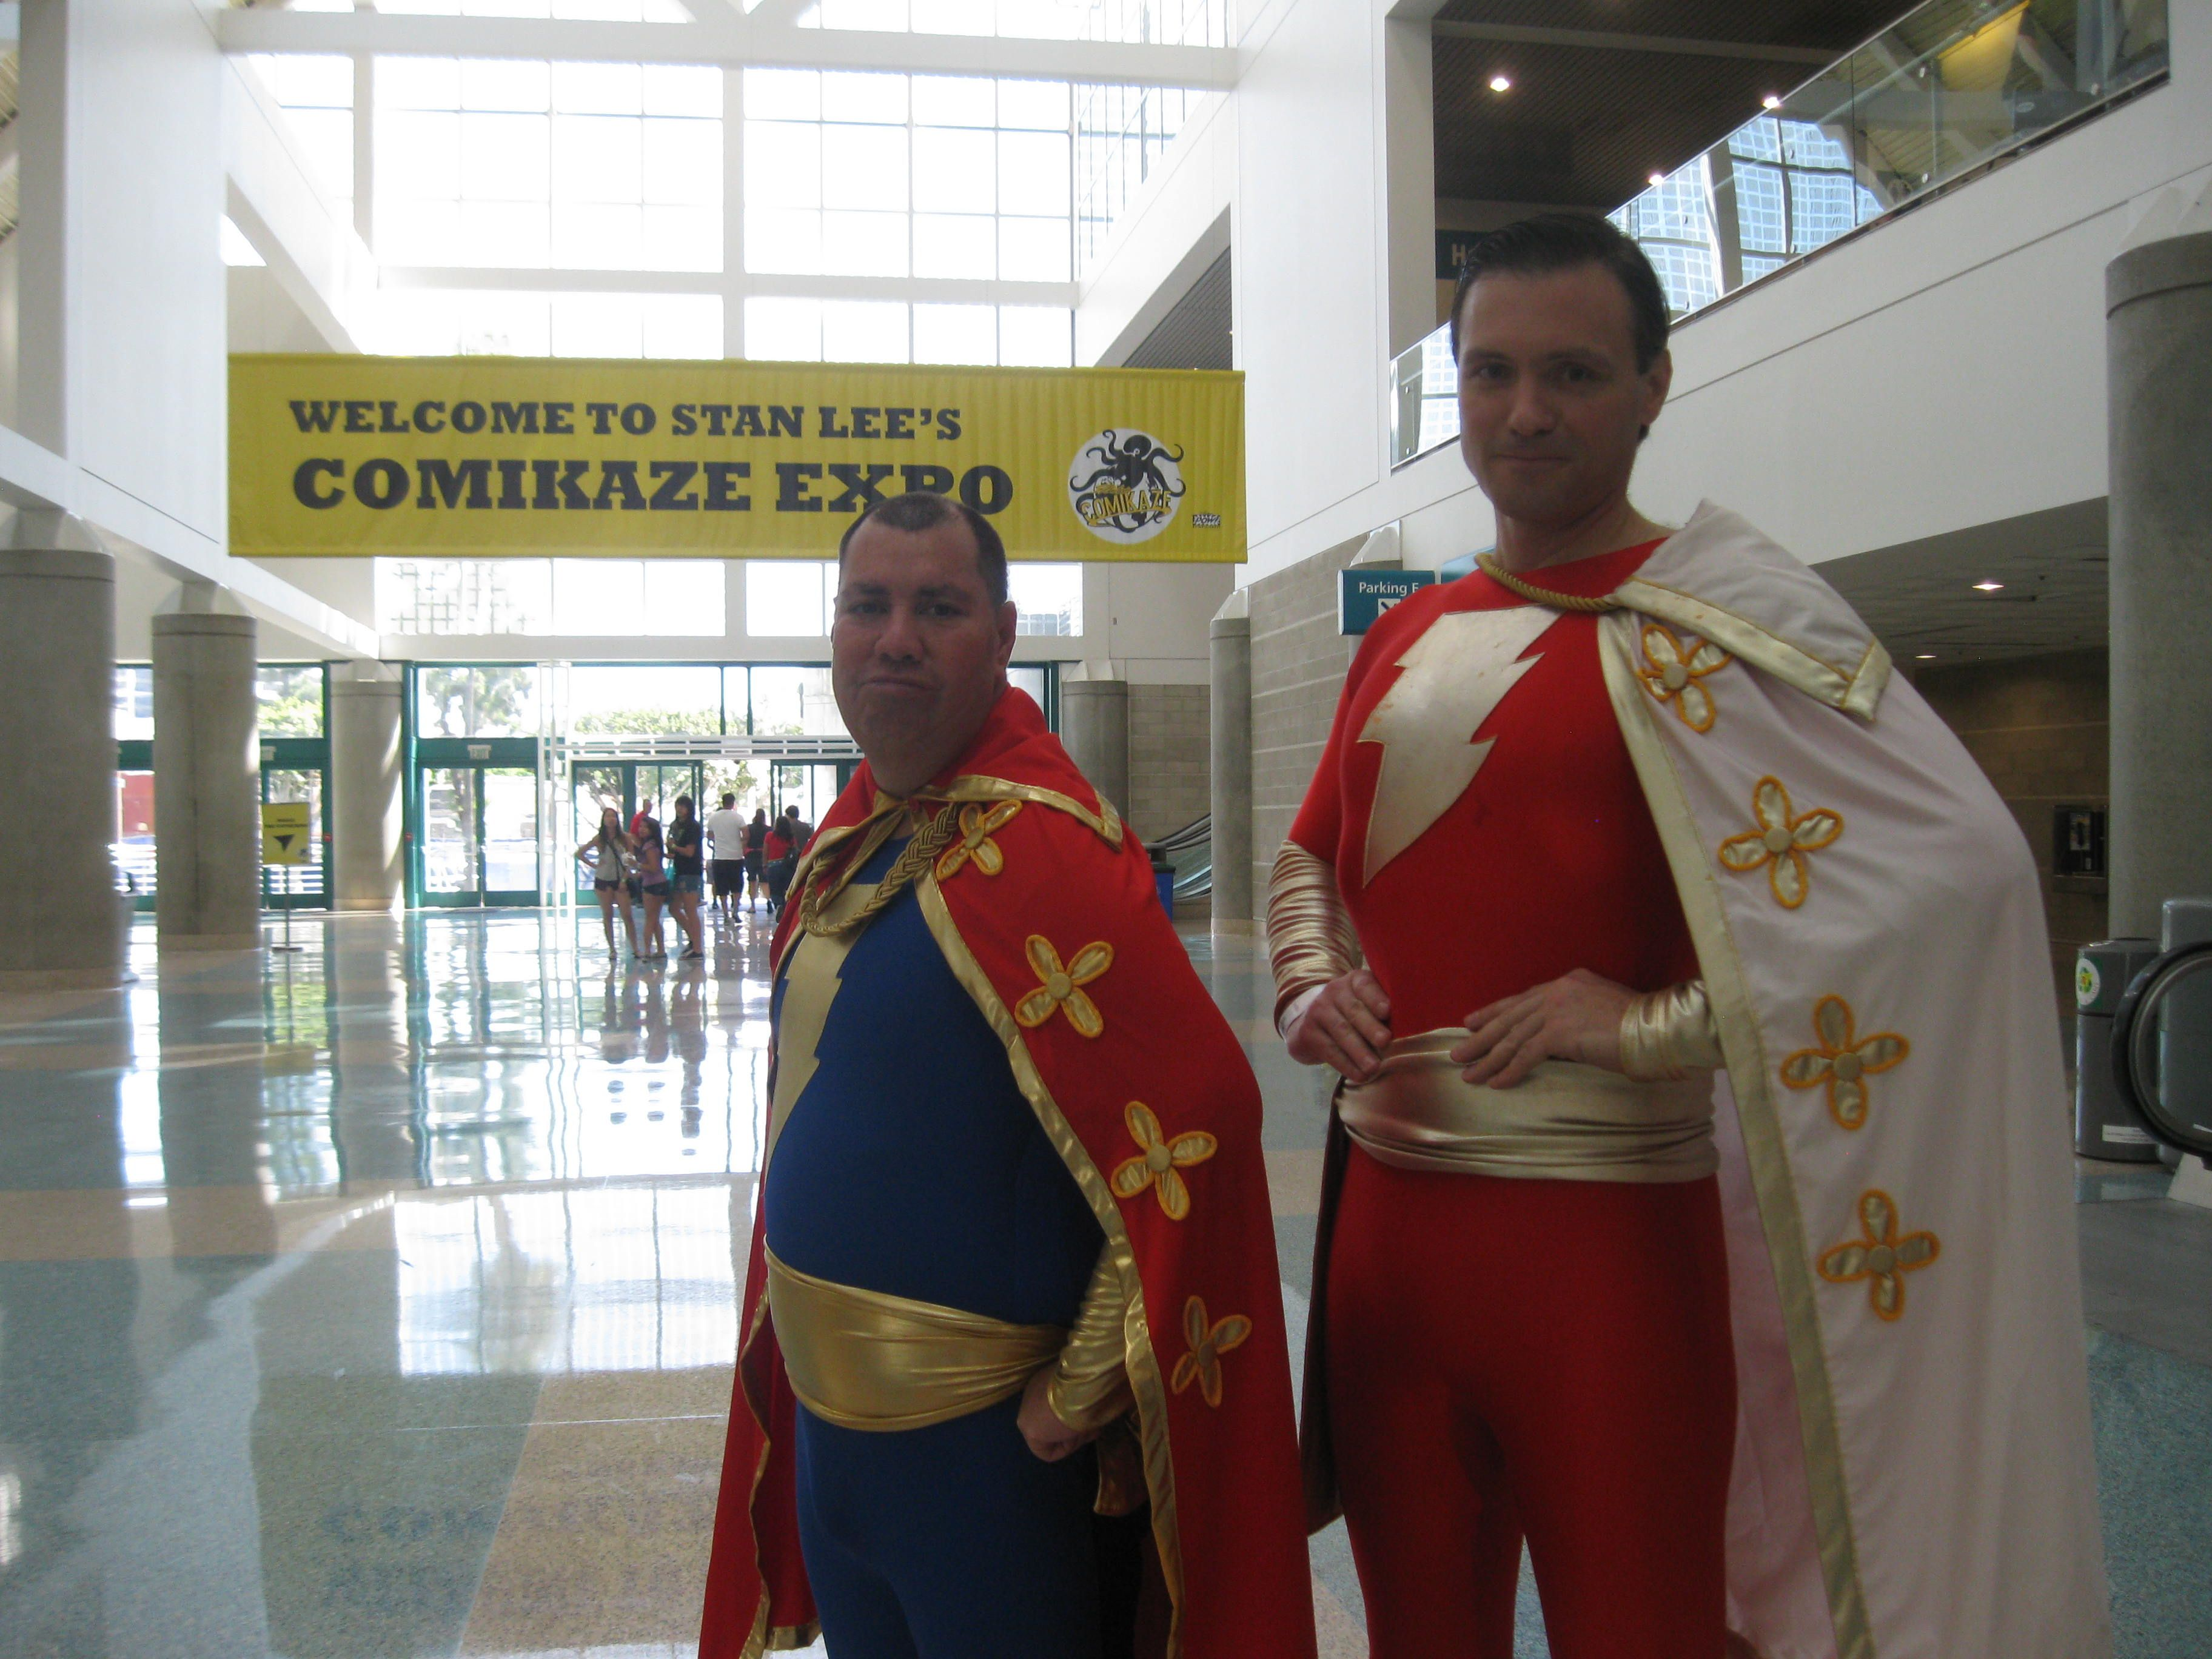 Captain Marvel and Captain Marvel jr. cosplay